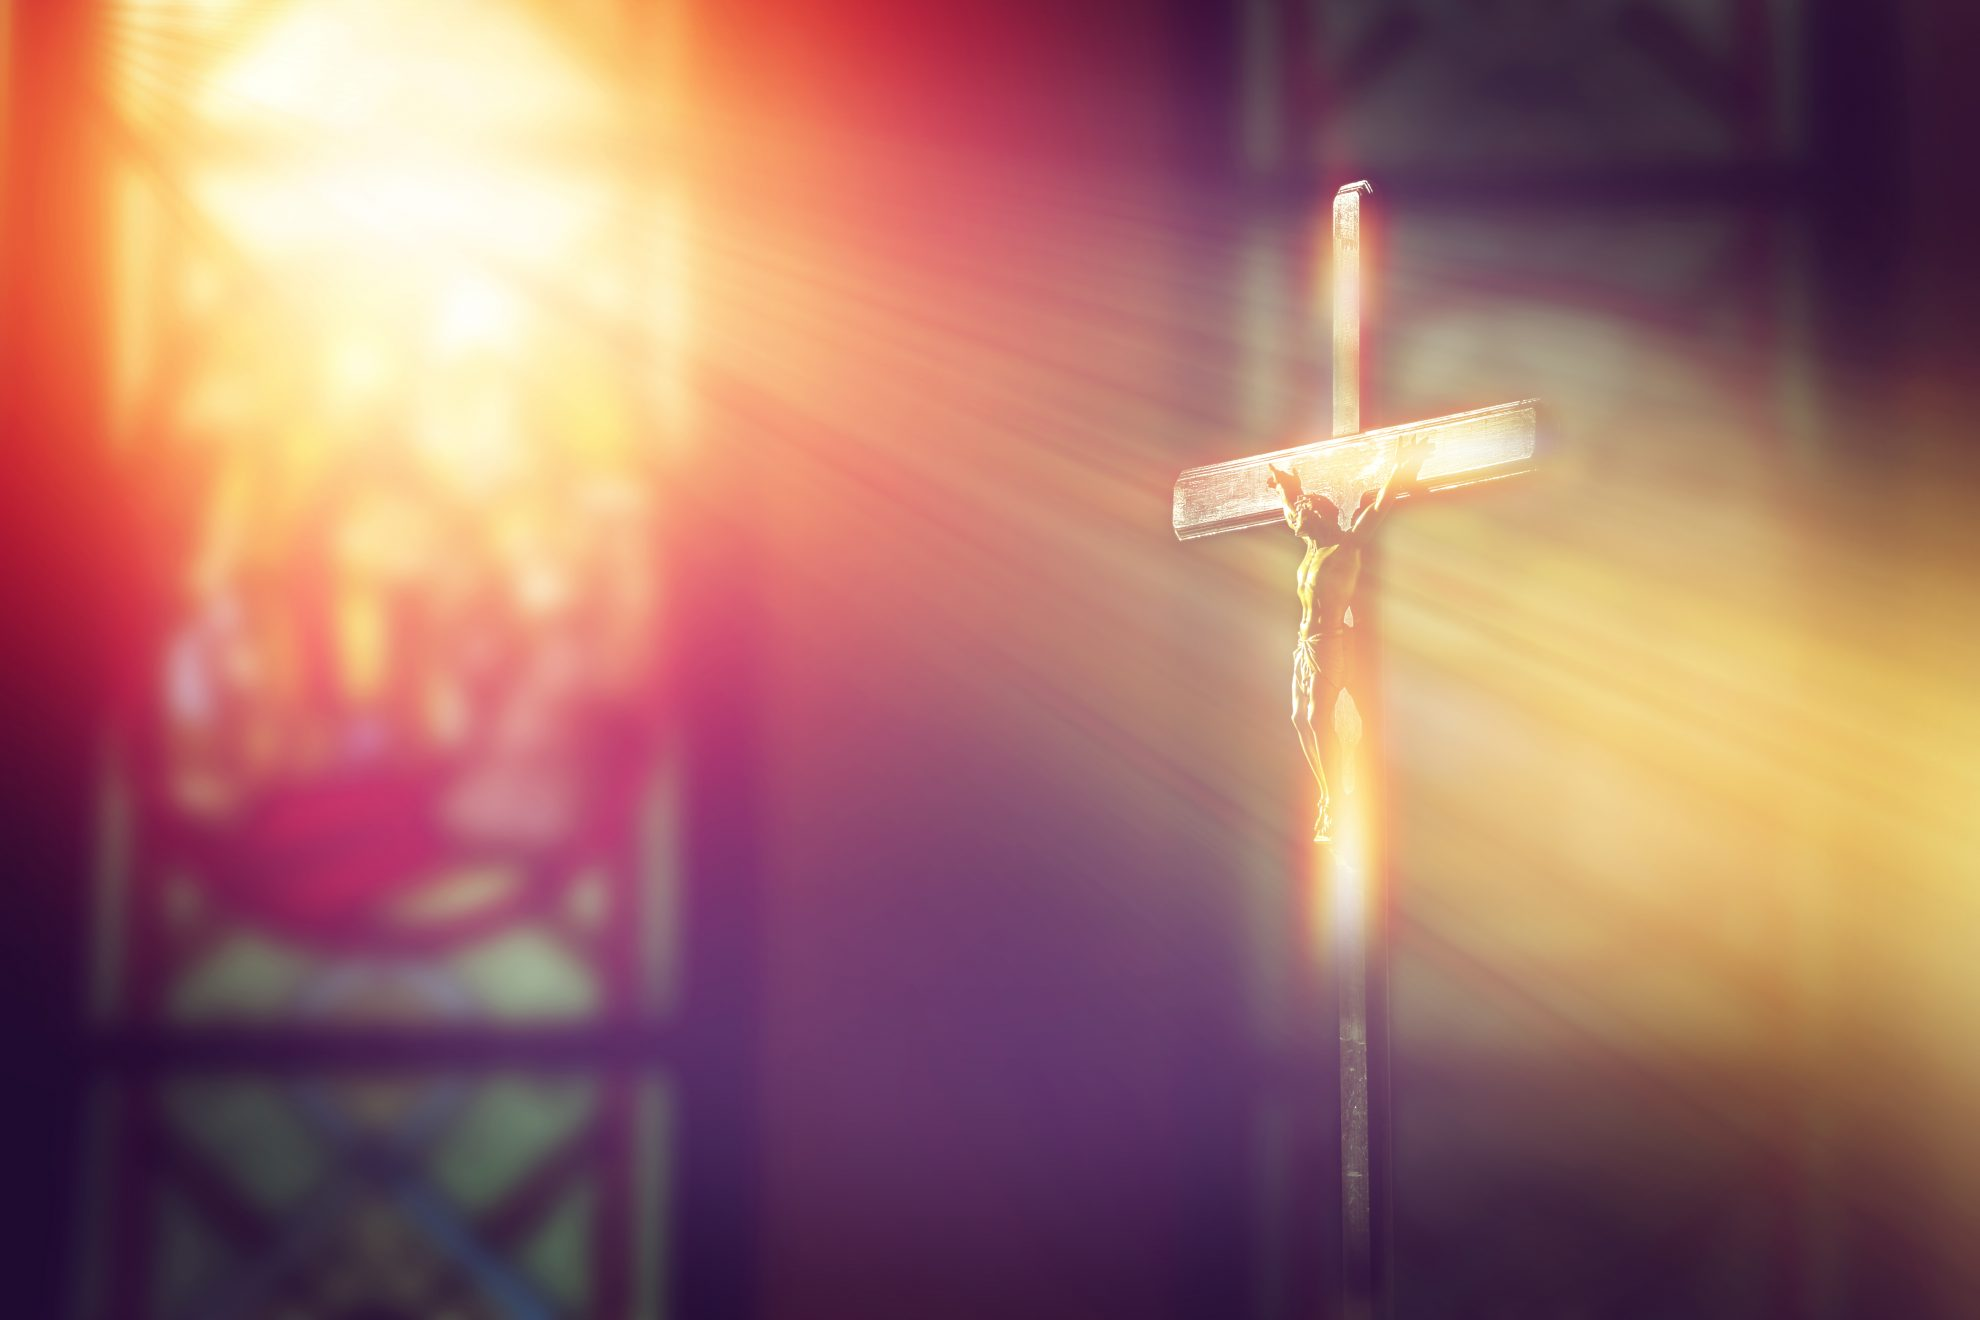 Crucifix with ray of light from stained glass